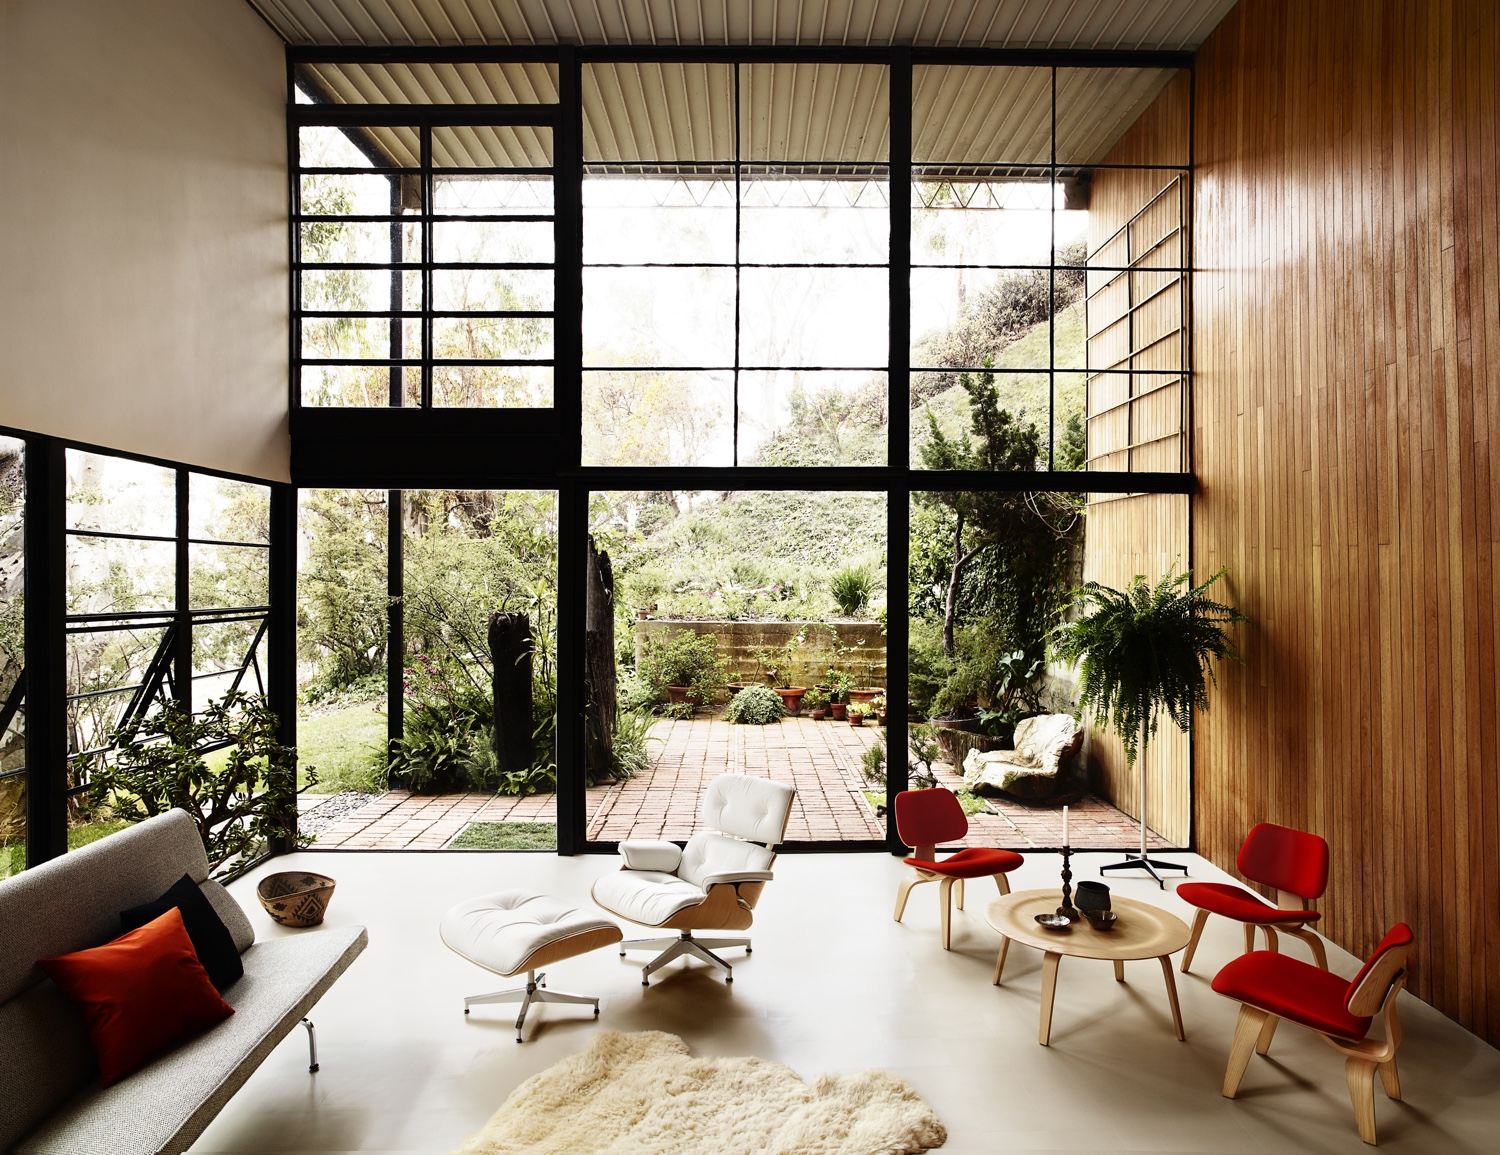 Eames house living room design ideas the classic design stories of the eames lounge chair and ottoman